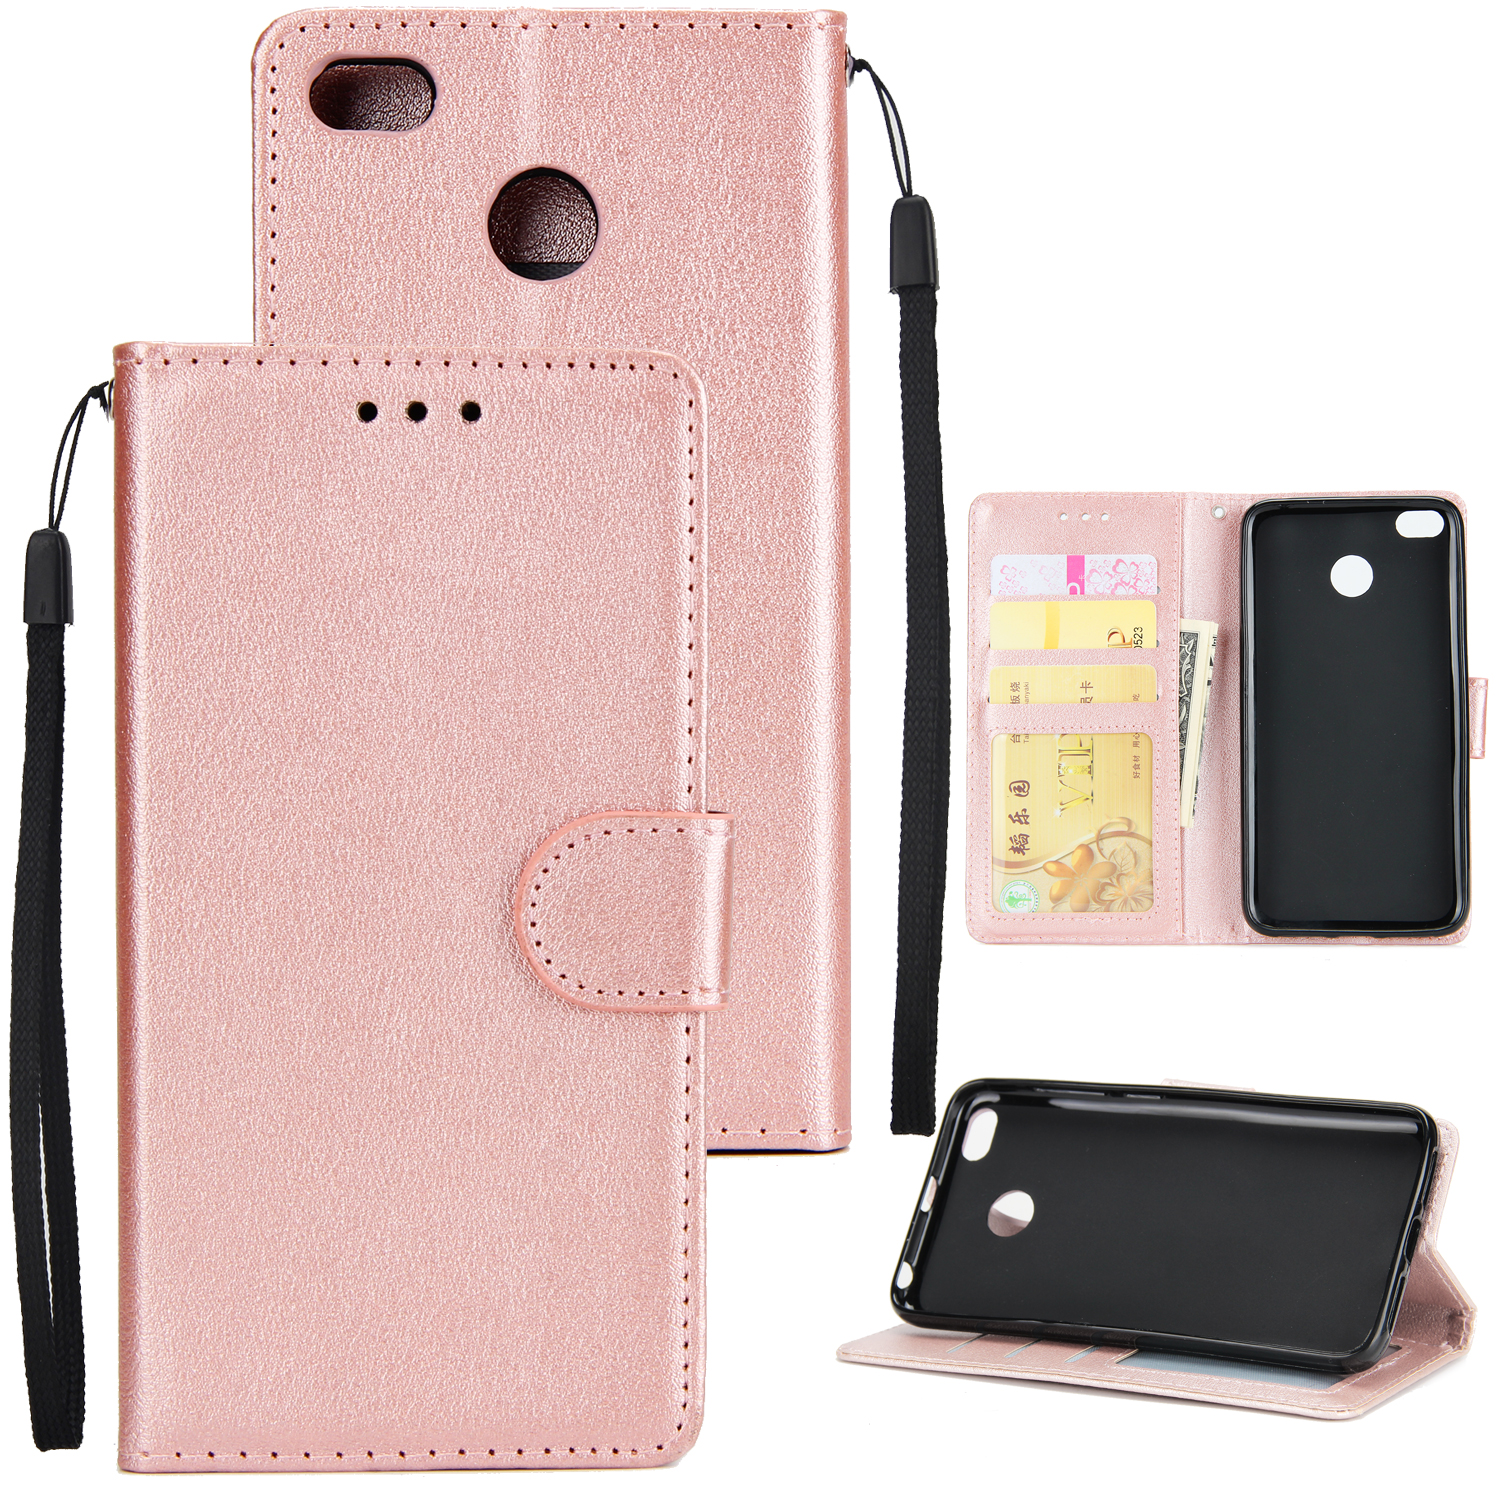 Ultra Slim Shockproof Full Protective Case with Card Wallet Slot for Xiaomi Redmi 4X Rose gold